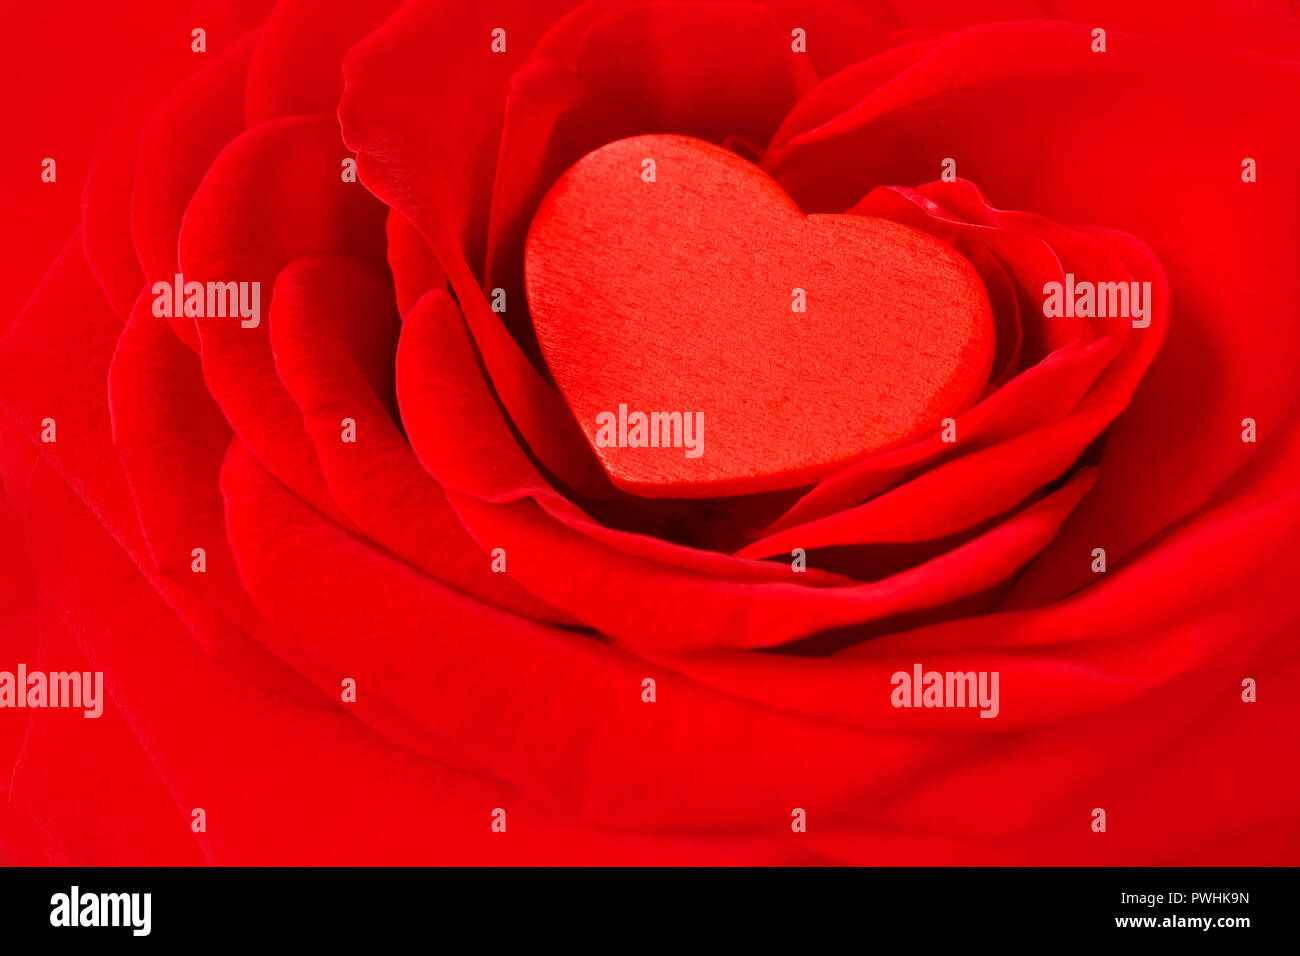 Valentines Day Greeting Card Red Rose Stock Photos Valentines Day